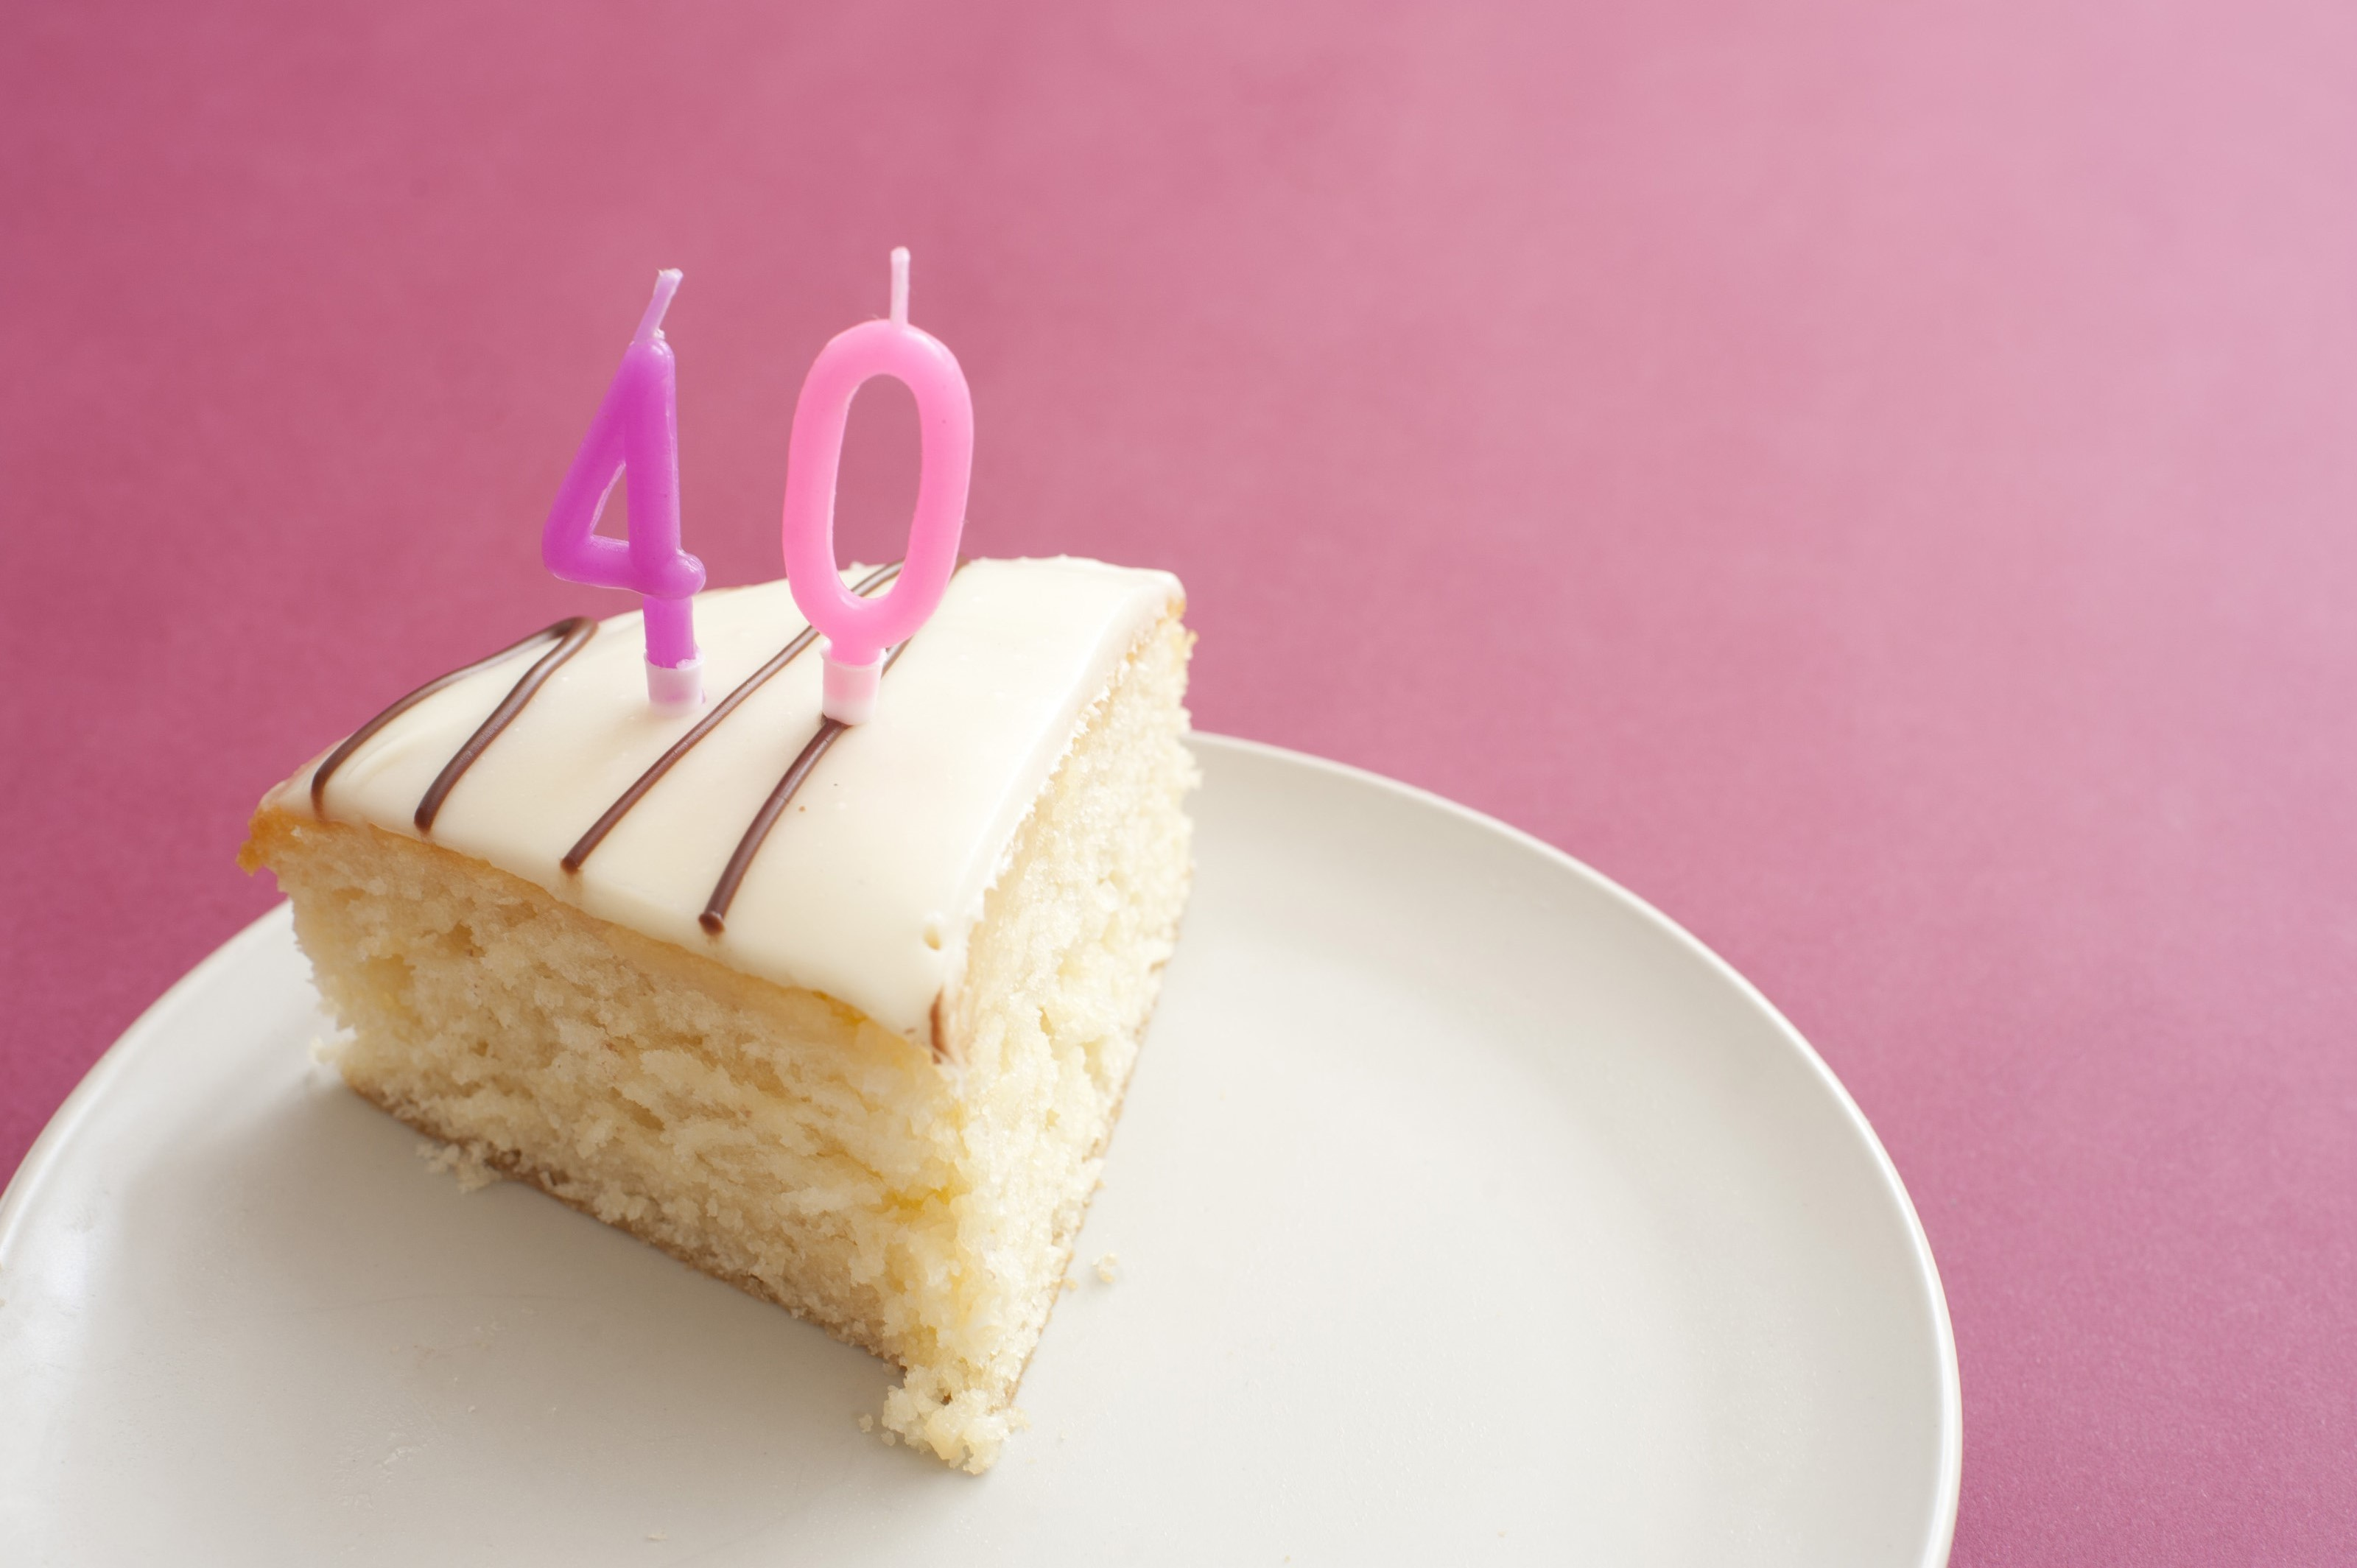 Free Image Of Slice Of Cake With 40th Birthday Candles